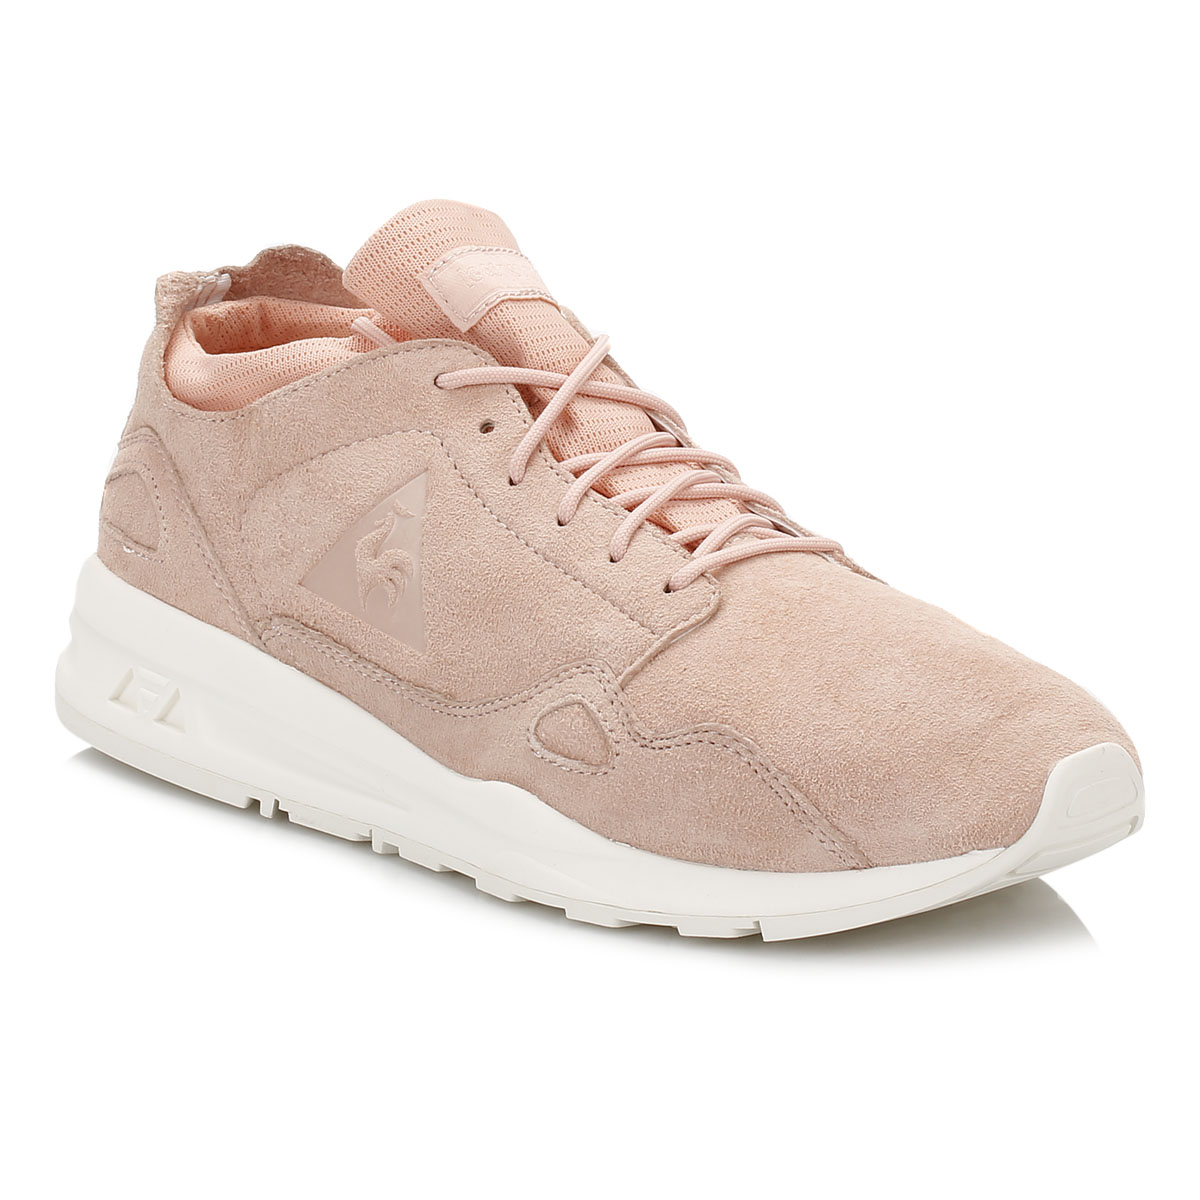 f8c25e037fc Le Coq Sportif Womens LCS R Flow Trainers, Pink or White, Nubuck ...